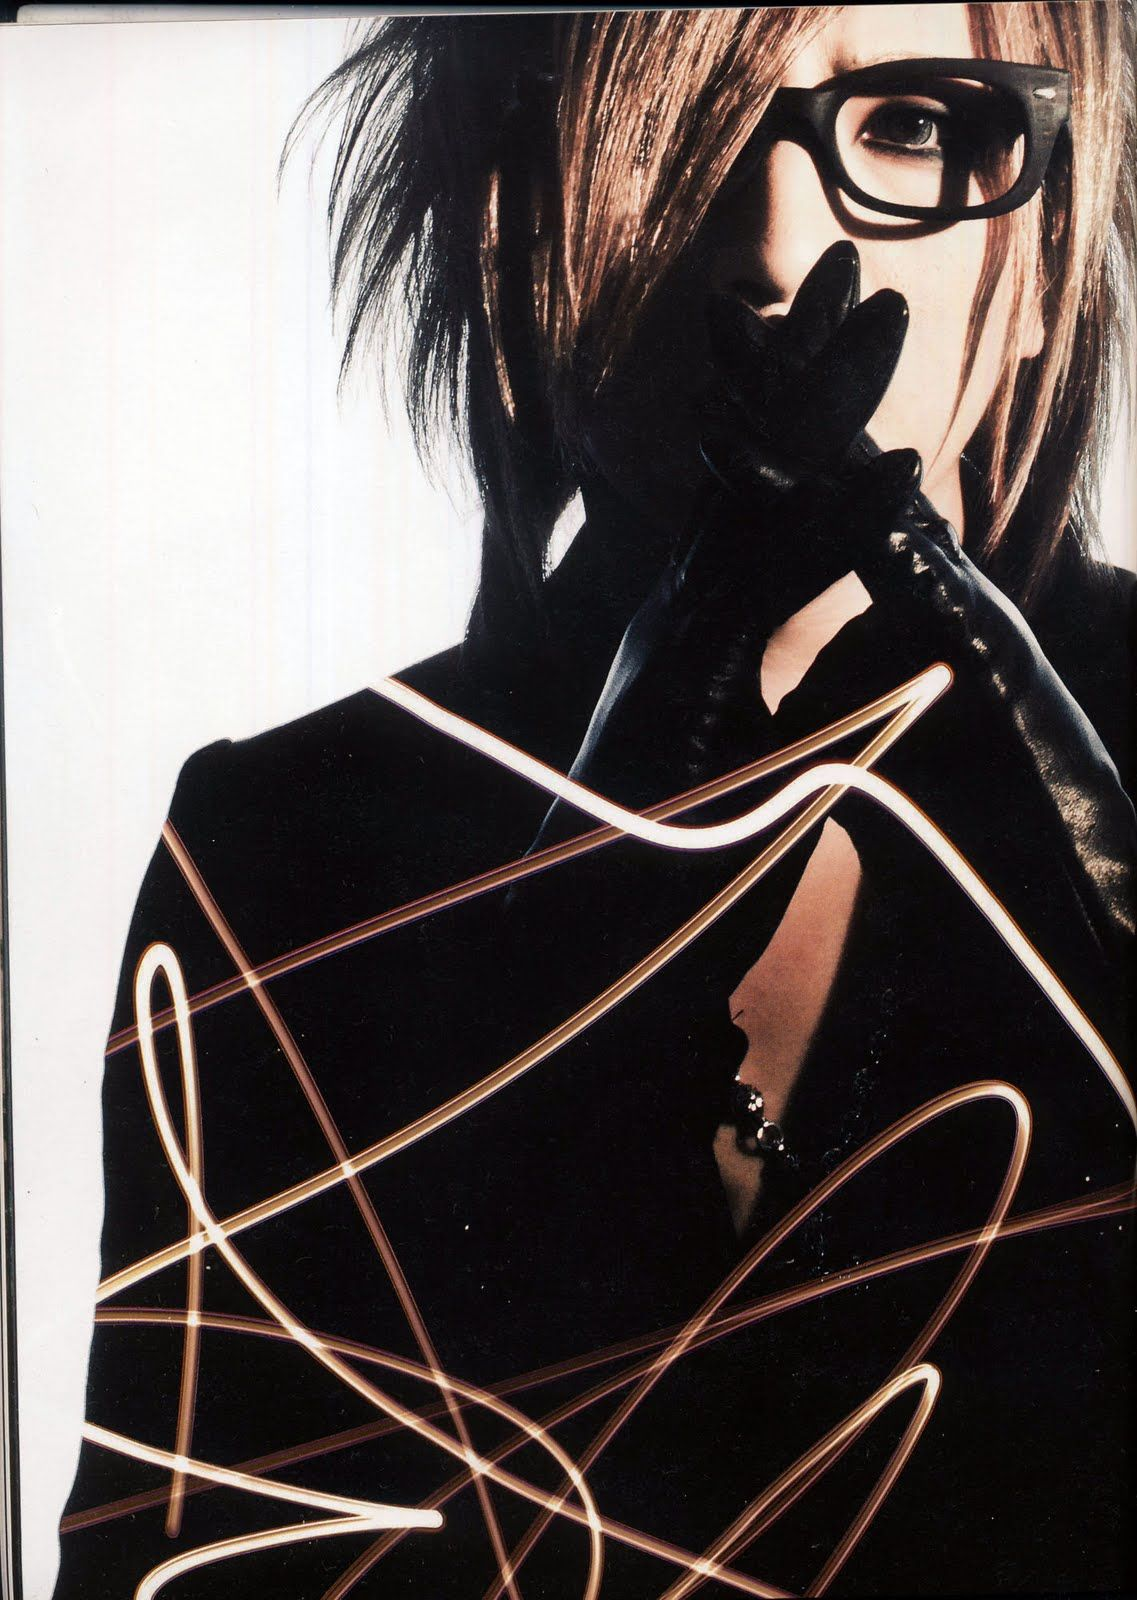 Ruki the gazette looking too cute with glasses and blonde hair ueω